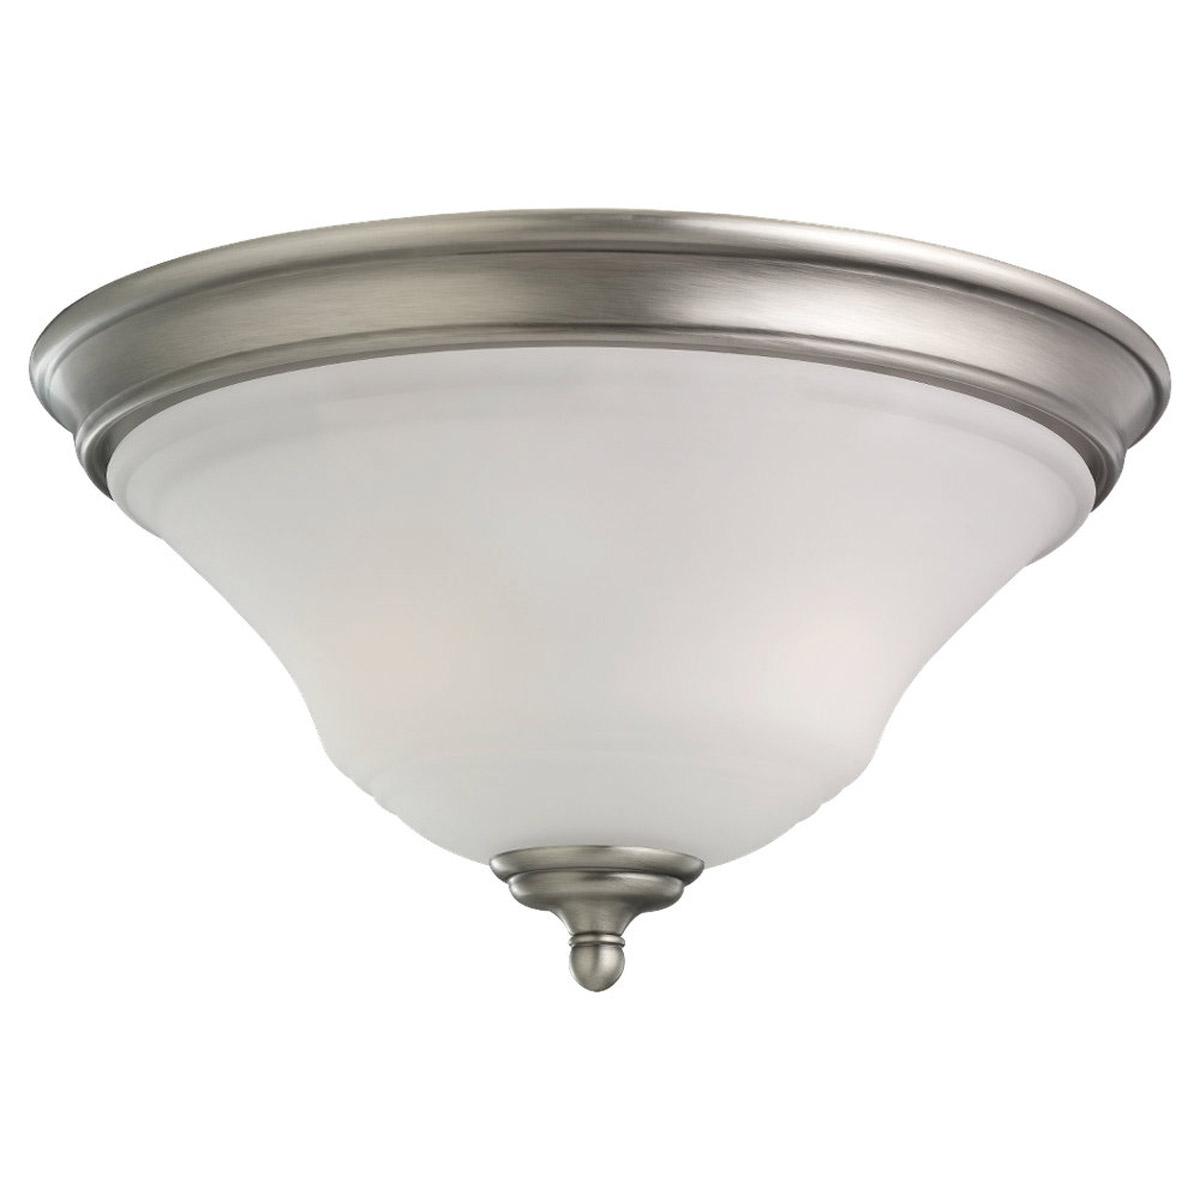 Sea Gull 75381-965 Parkview 2 Light 15 inch Antique Brushed Nickel Flush Mount Ceiling Light in Satin Etched Glass photo